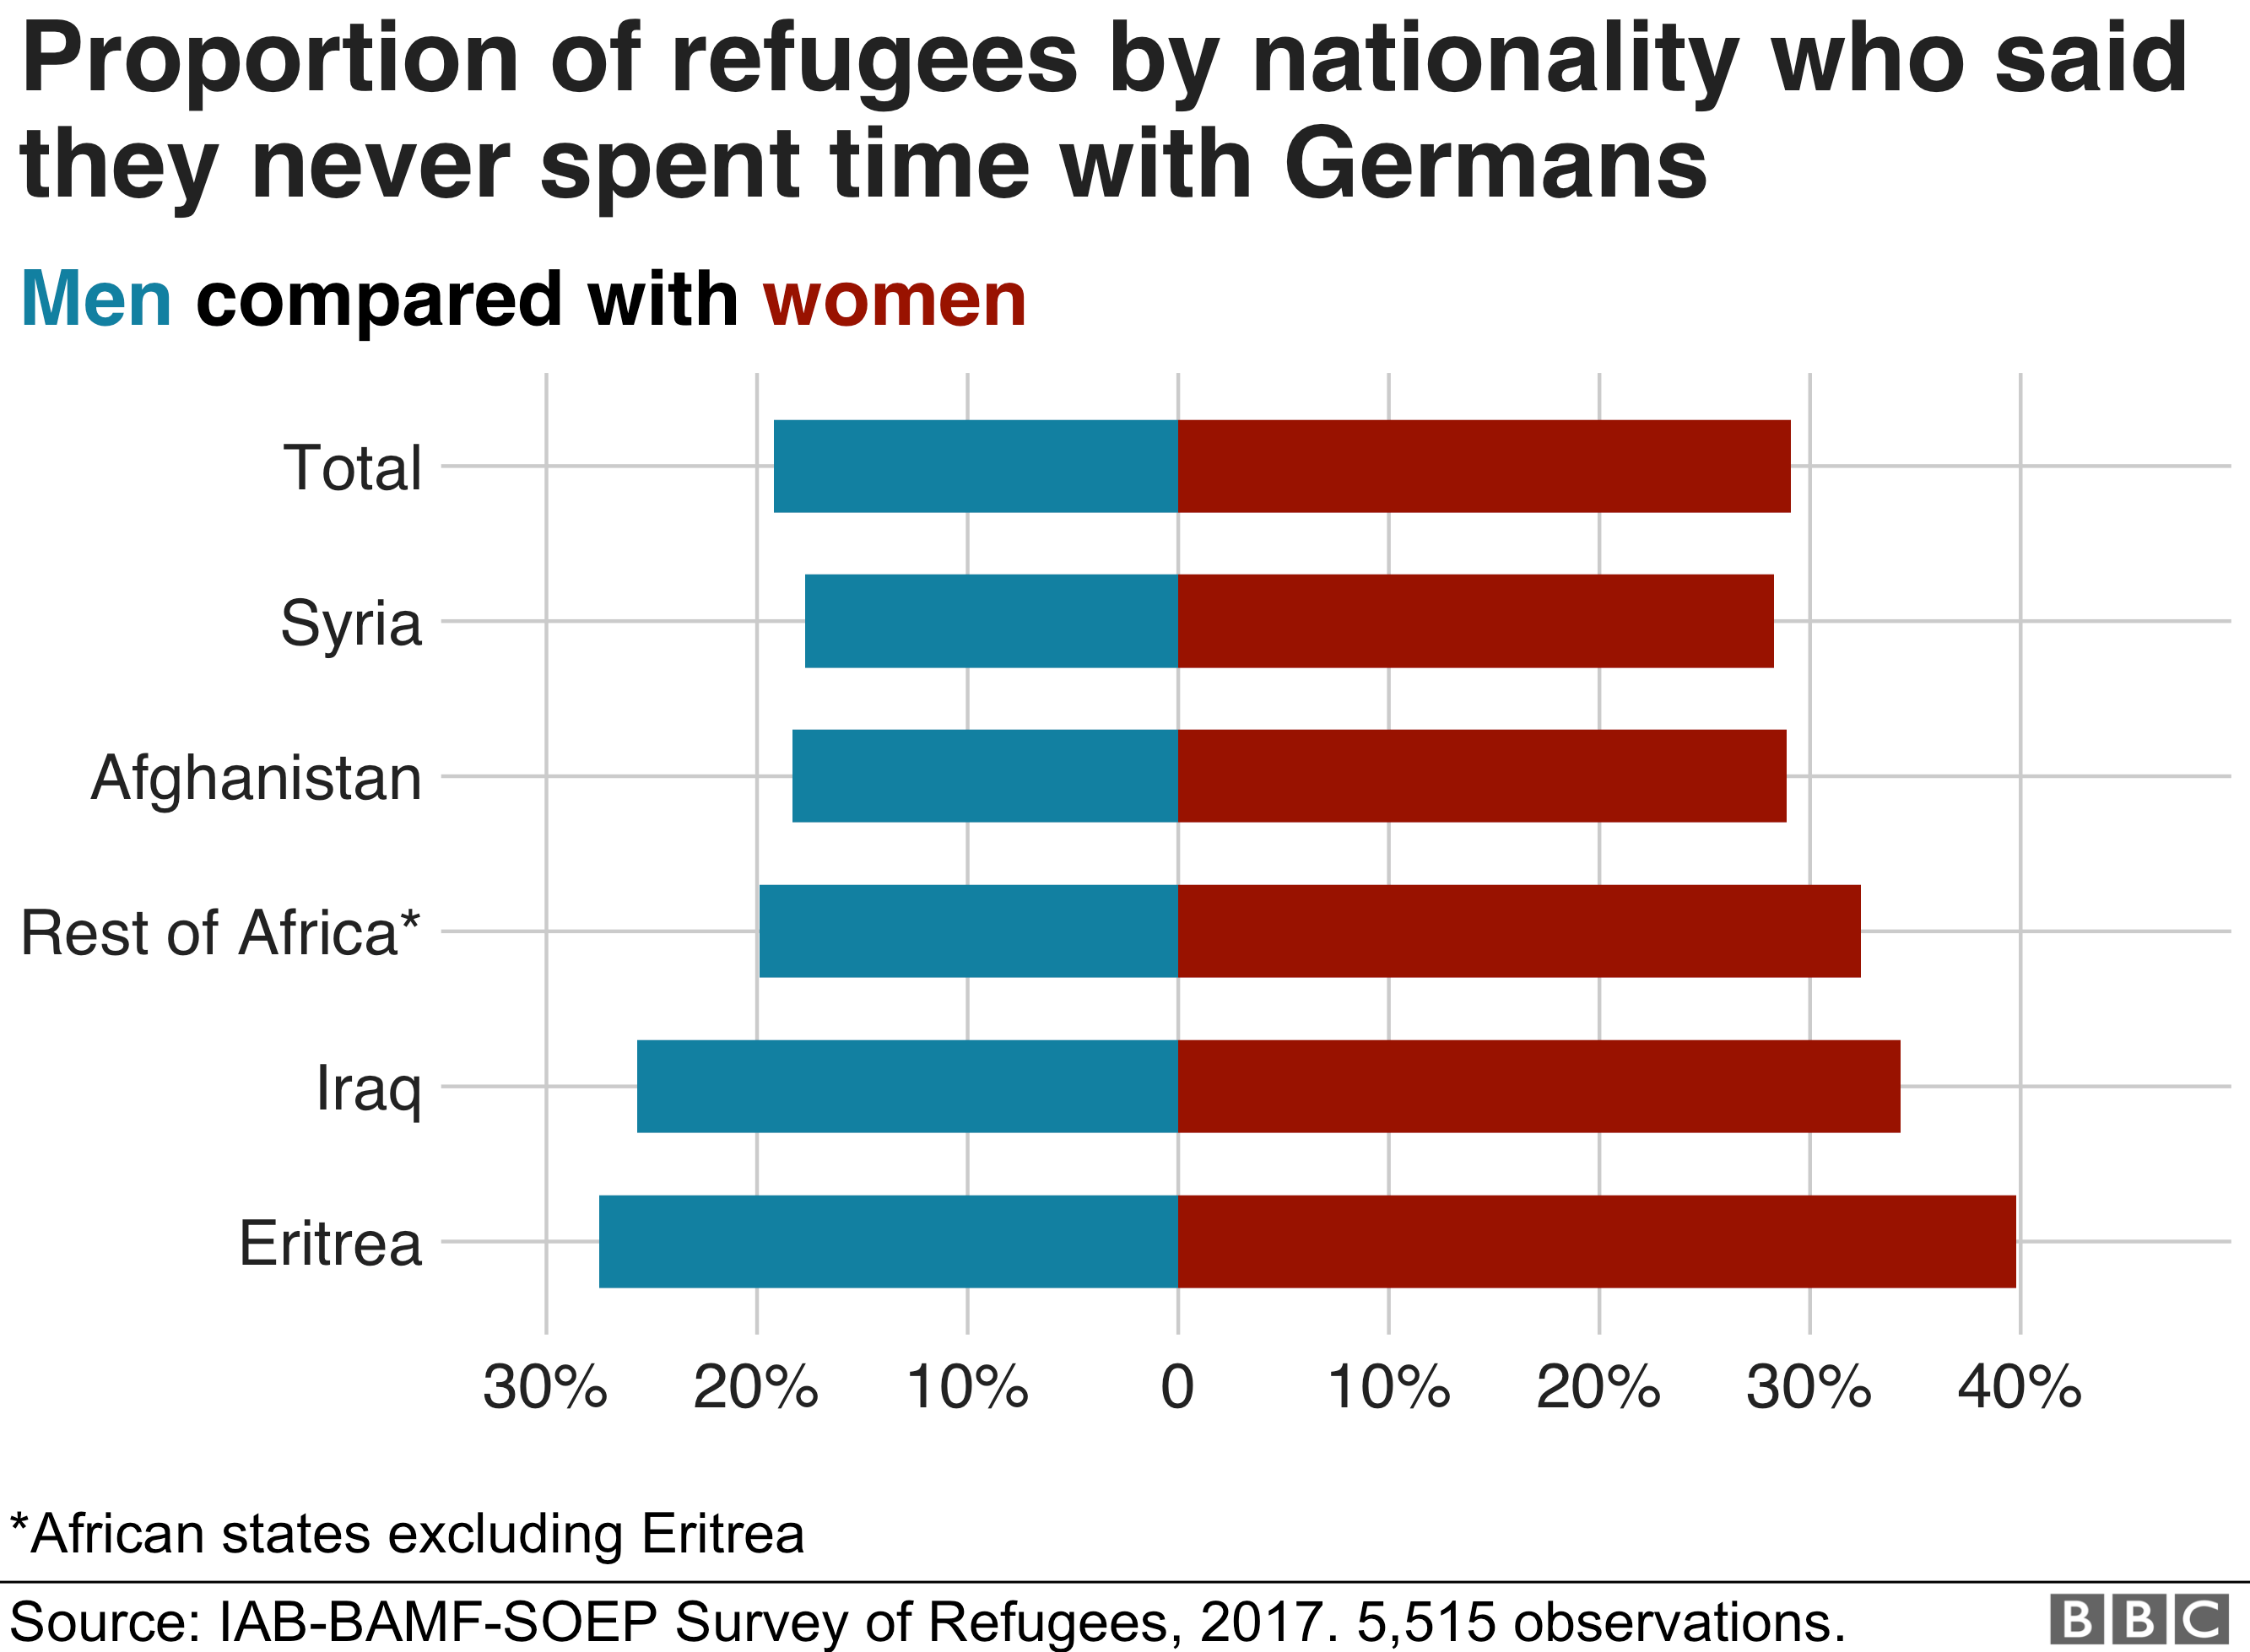 Chart showing proportions of refugees by nationality who said they never spend time with Germans